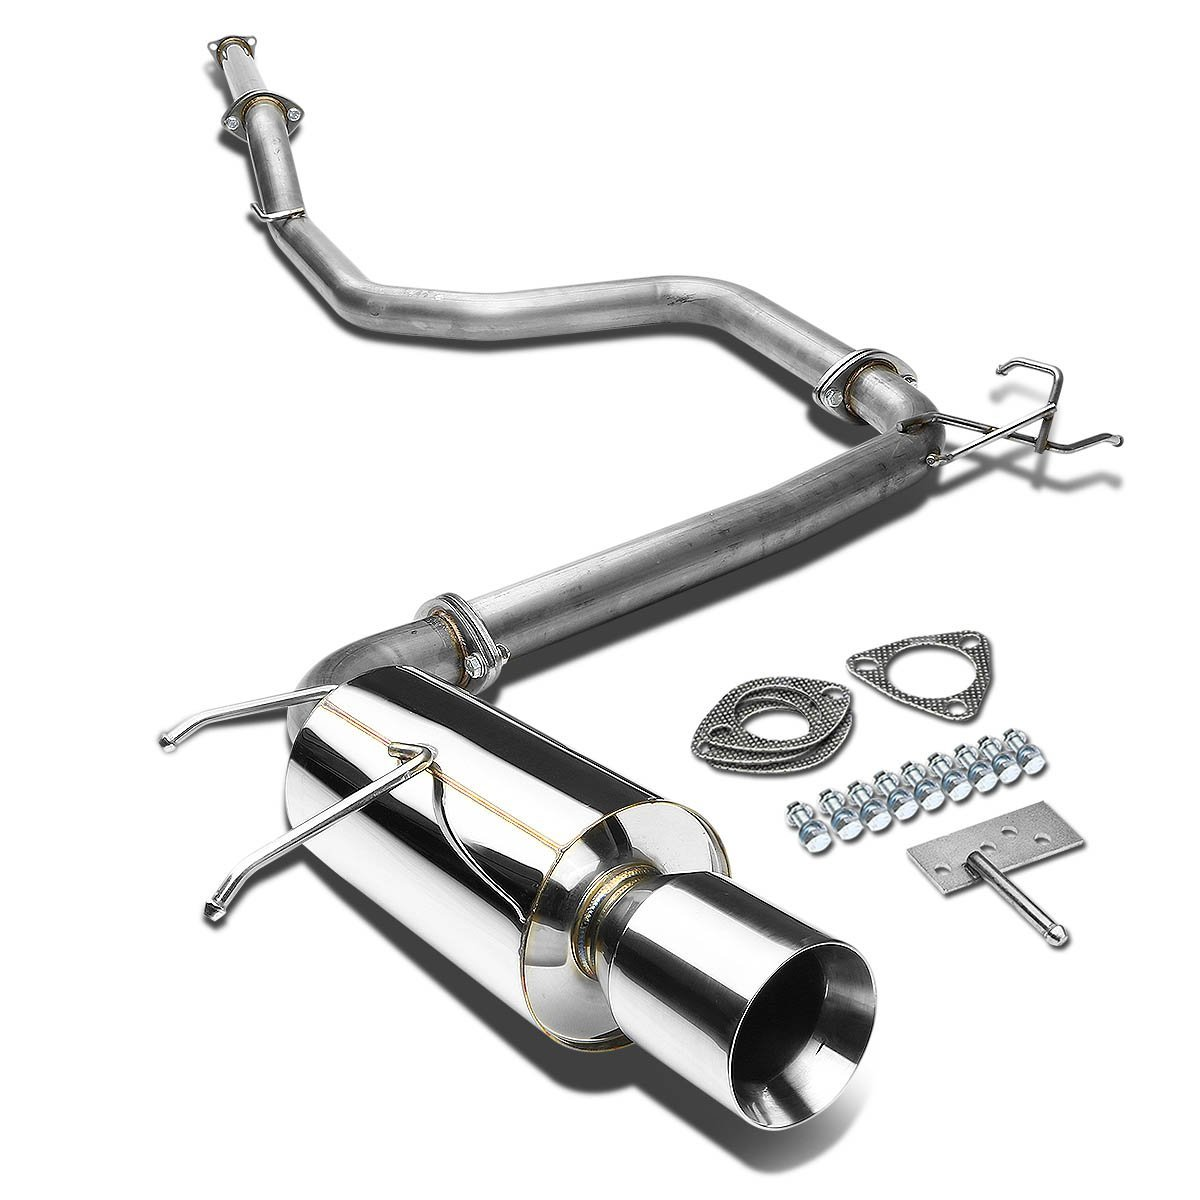 90-03 Acura Integra 1.8L Performance Catback Exhaust